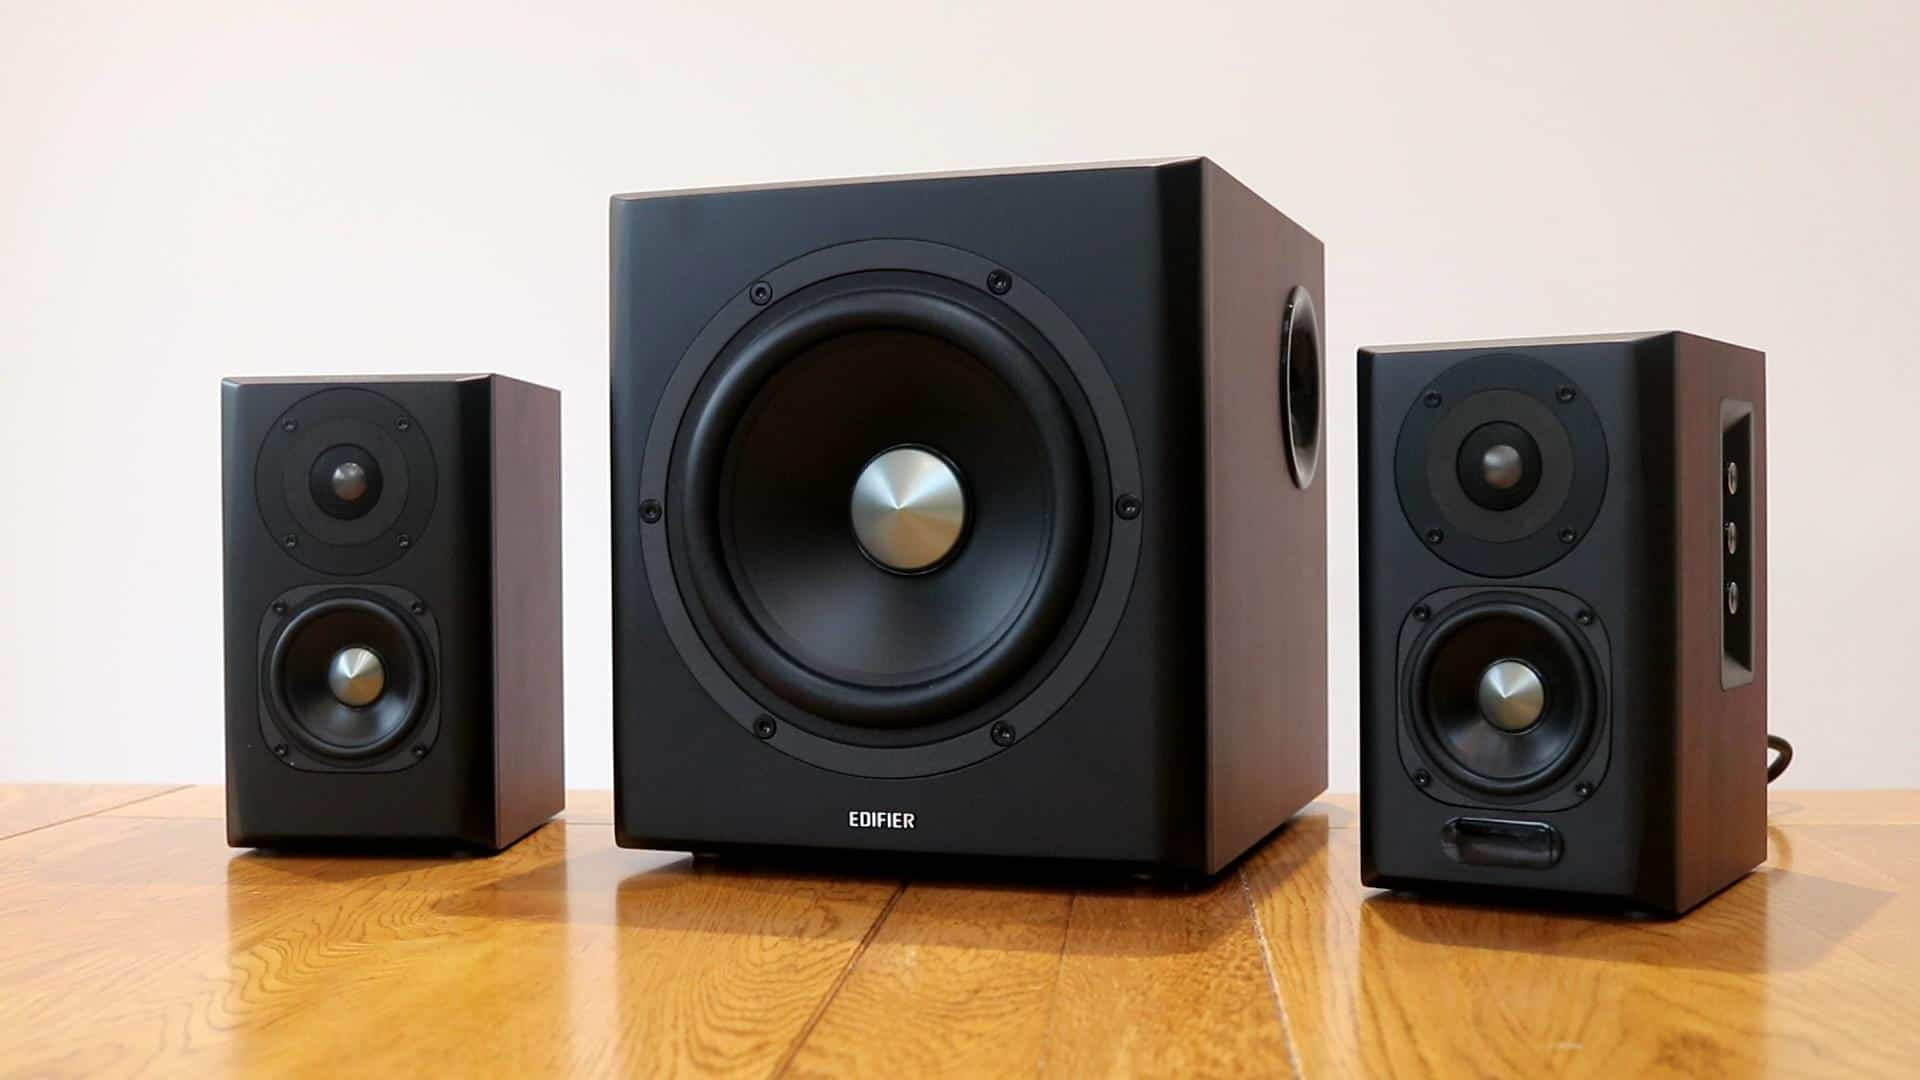 Edifier S350DB 2.1 Bookshelf Speaker and Subwoofer Review